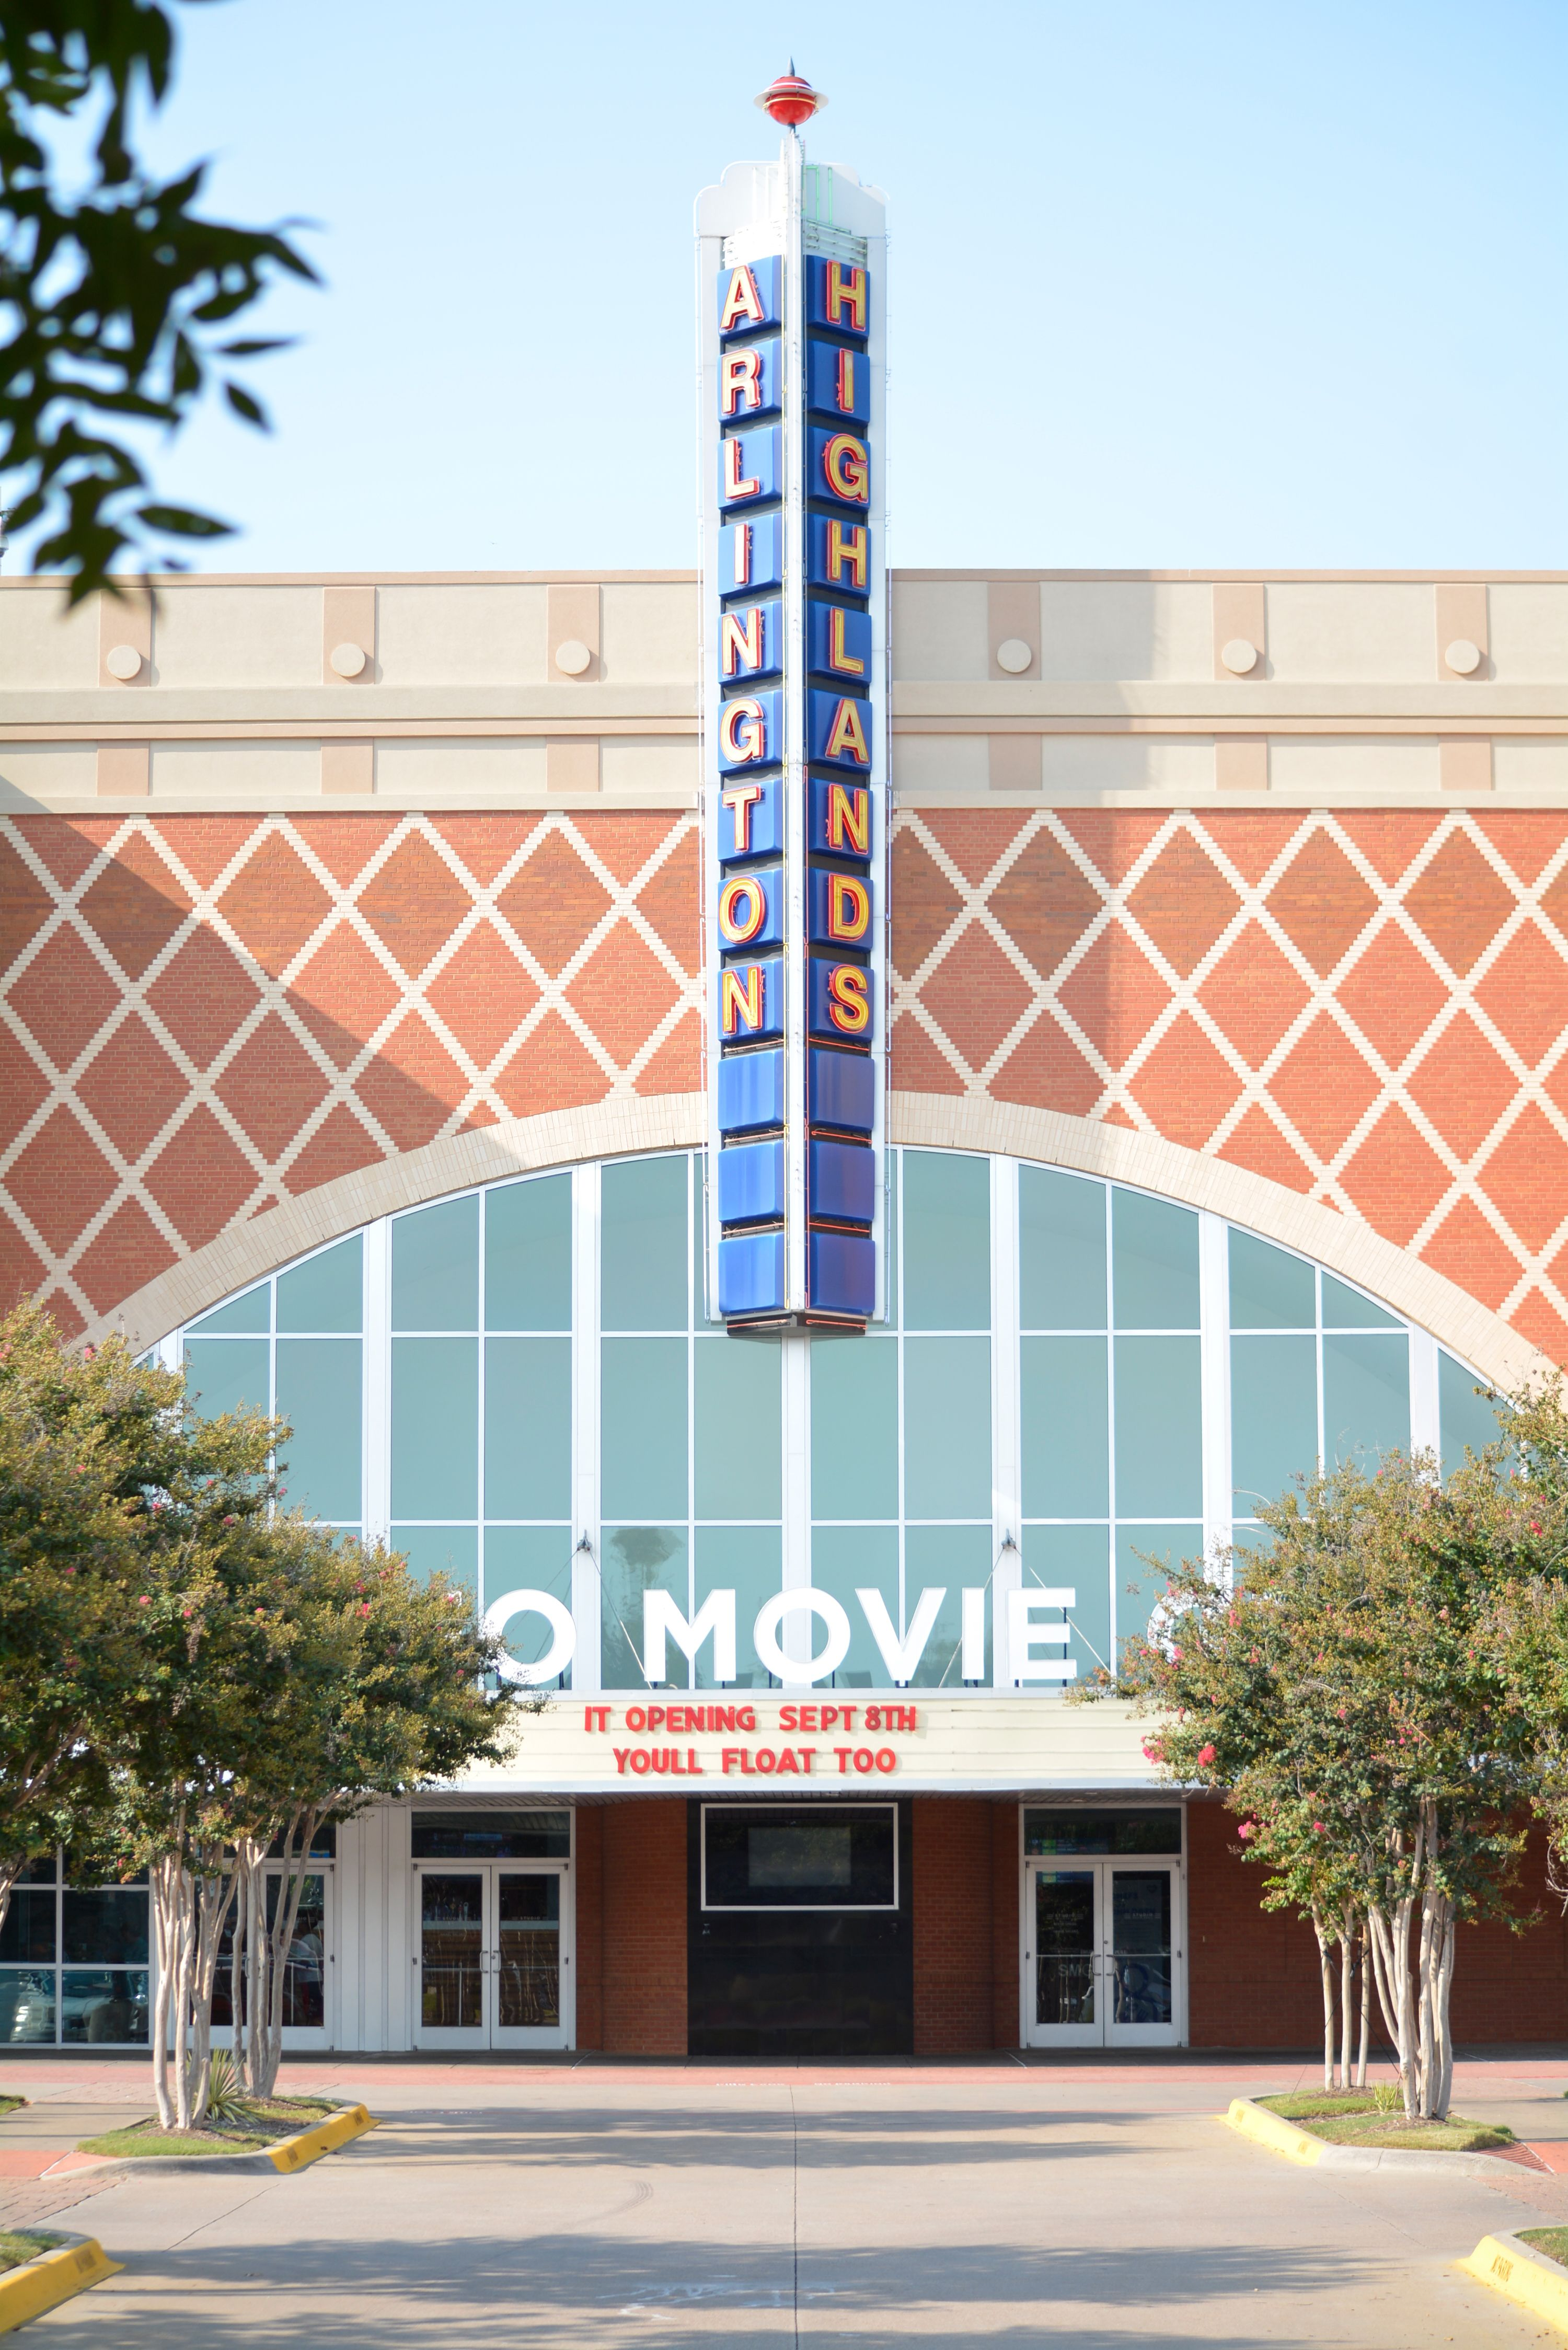 Catch a flick at the movie theatre at arlington highlands